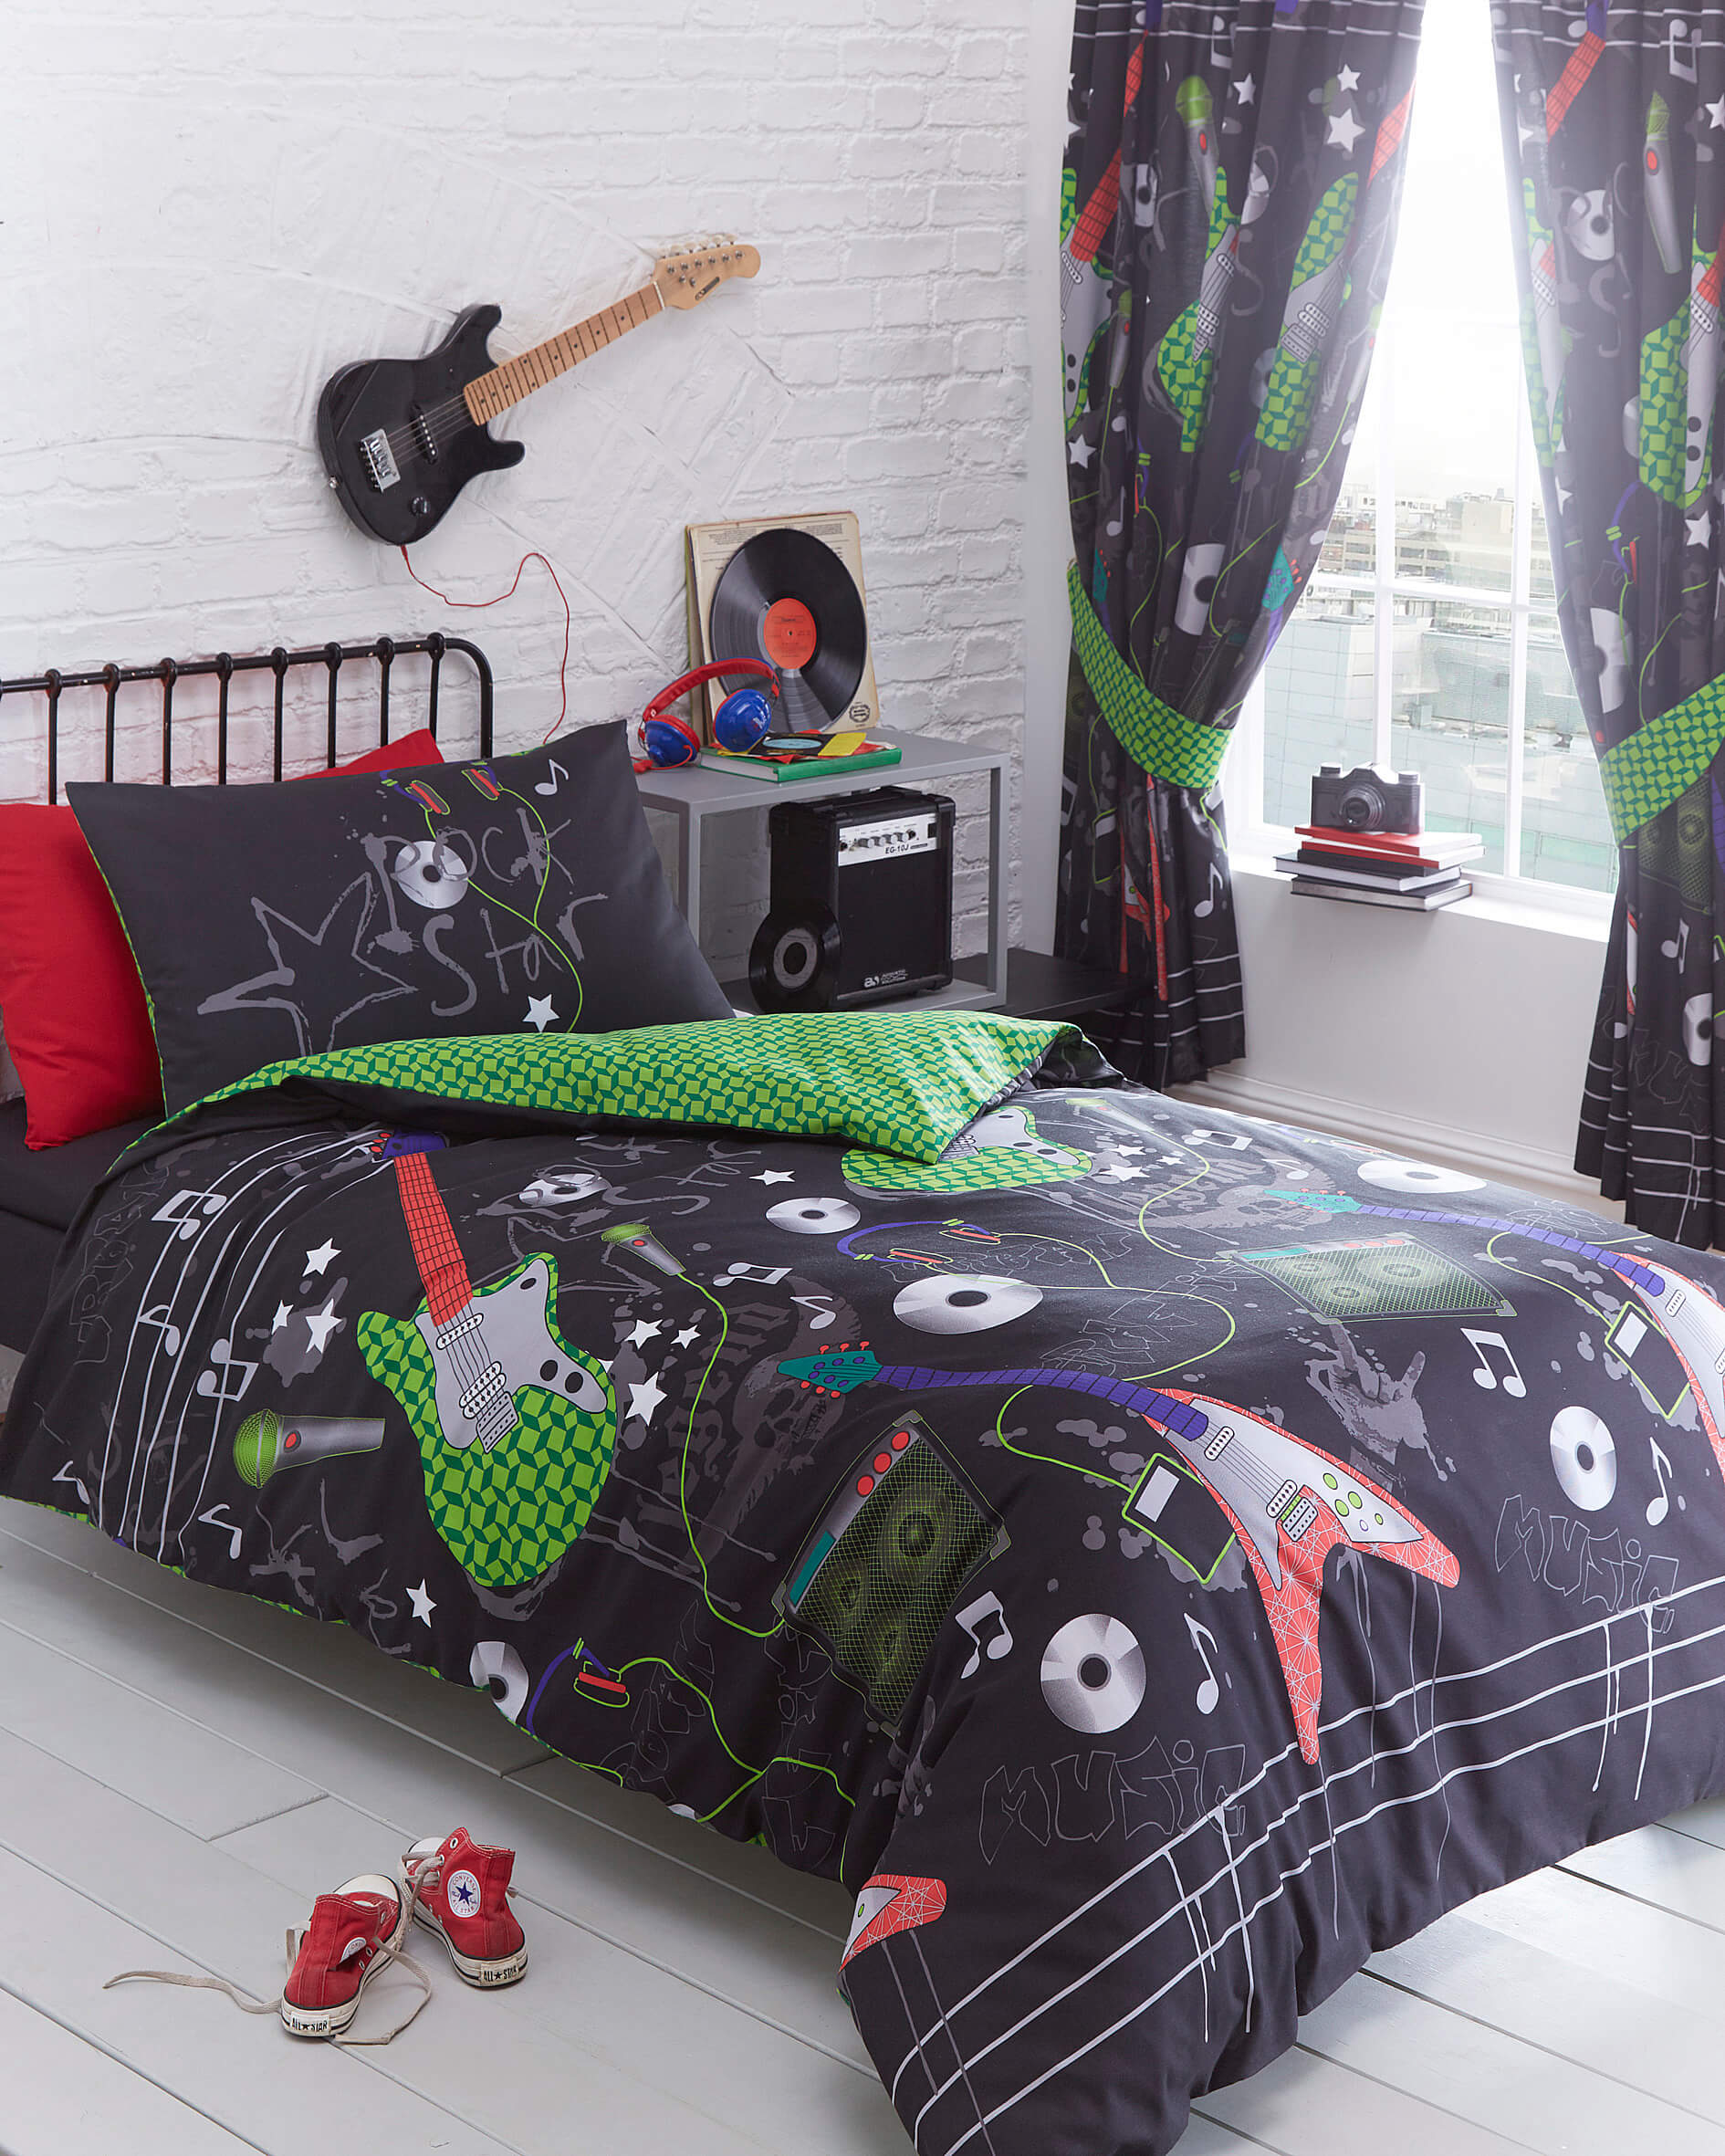 guitar rock design duvet cover set single also available in double king size matching curtains available bright reverse design